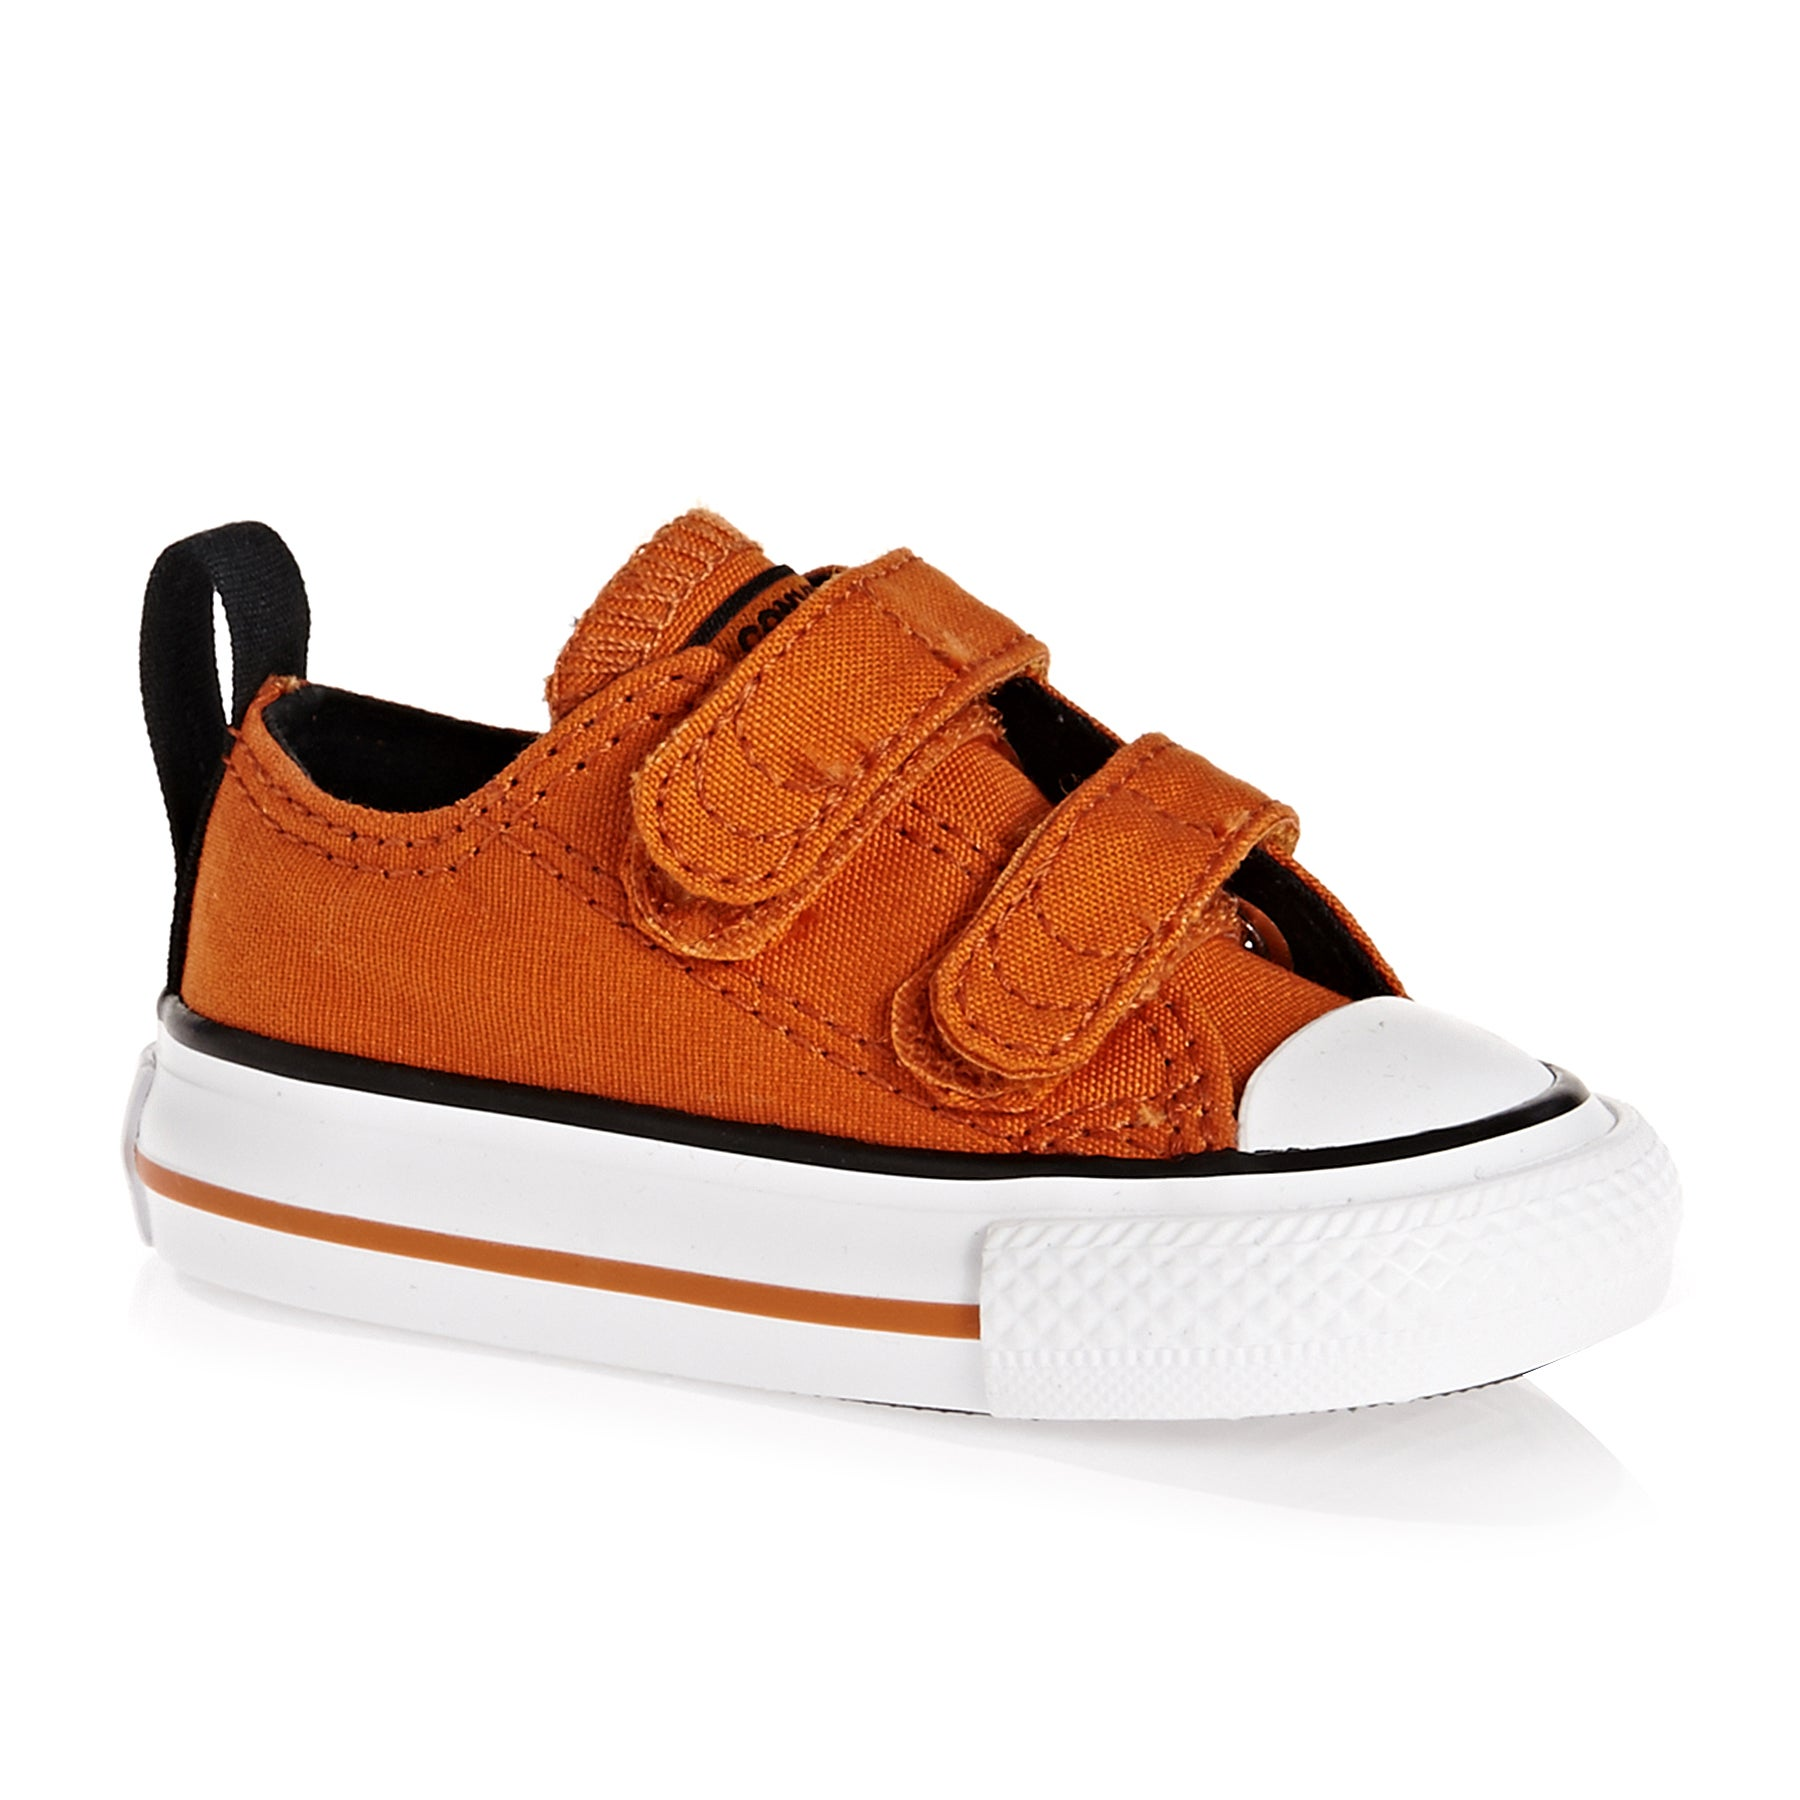 Converse Chuck Taylor All Star 2v Ox Baby Shoes - Campfire Orange Black White